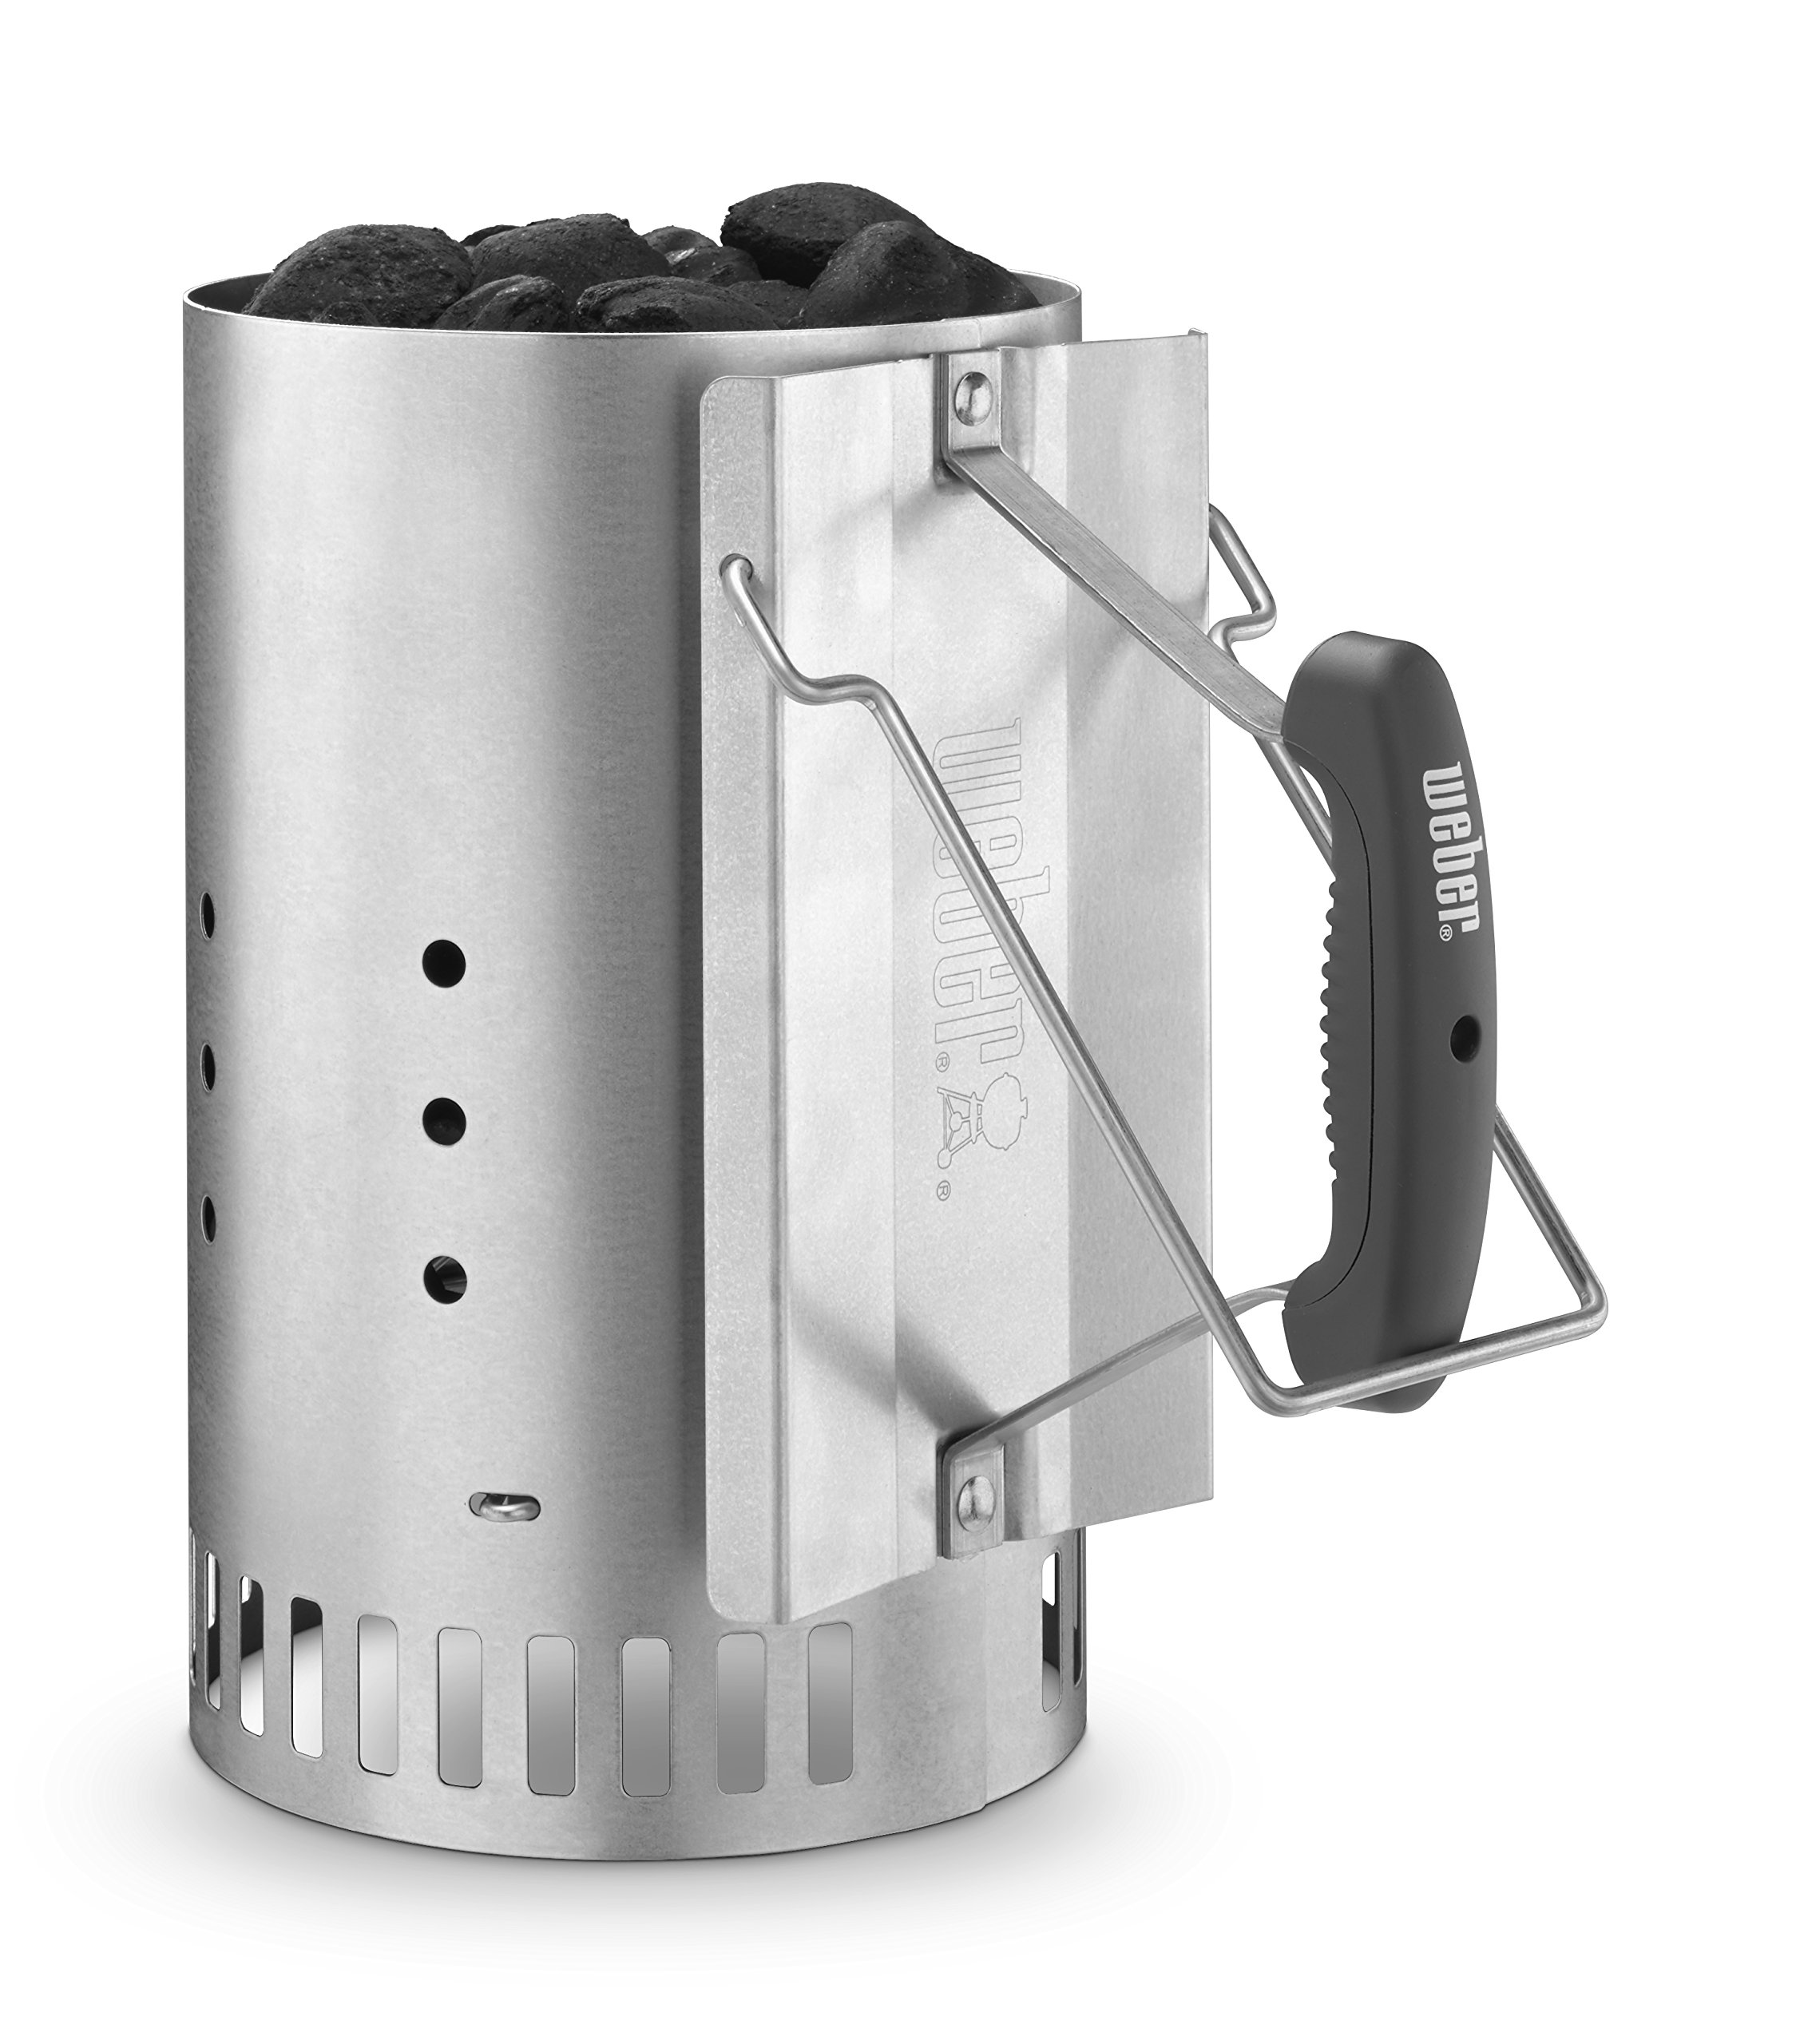 Weber Stephen Company 7429 Rapid Fire Chimney Starter, Silver by Weber